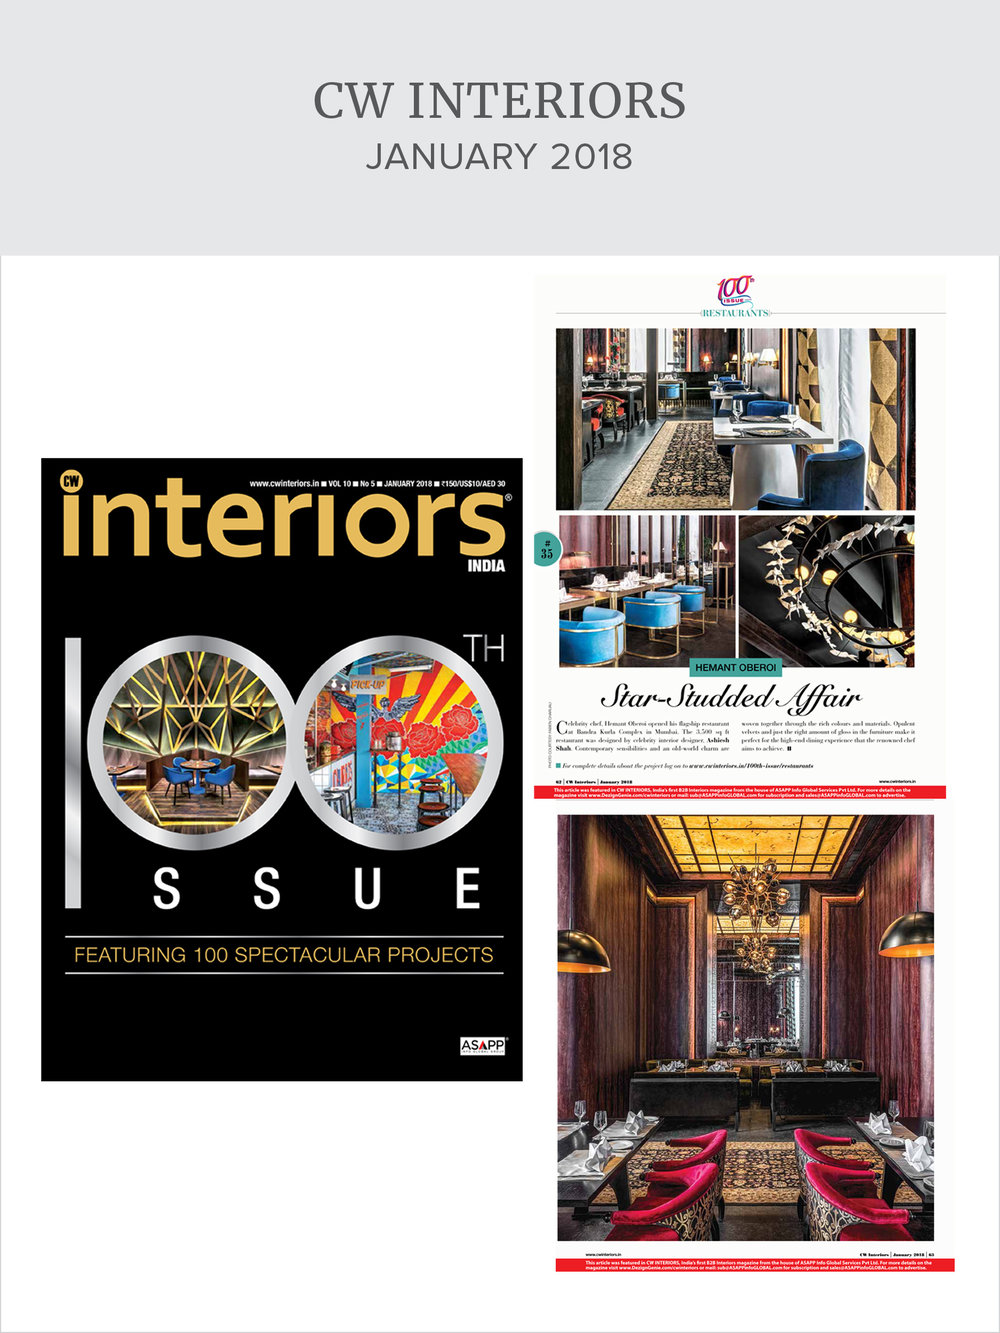 CW interiors 100th issue Jan 2018 Restaurant.jpg